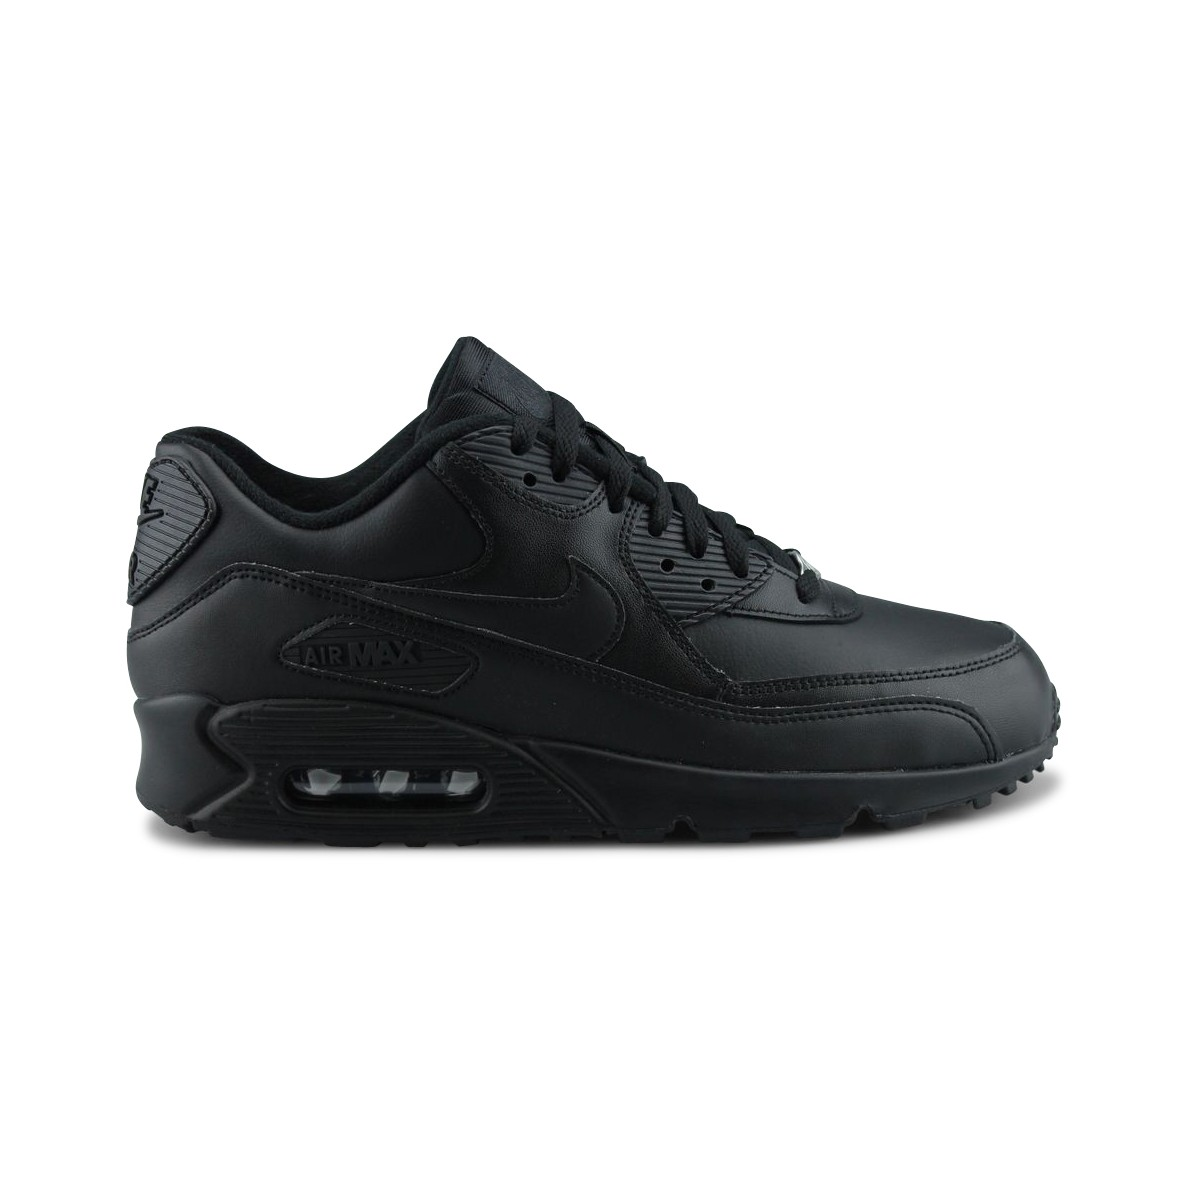 new arrival dbb7e 5f042 Nike Air Max 90 Cuir Leather Noir 302519-001   Street Shoes Addict